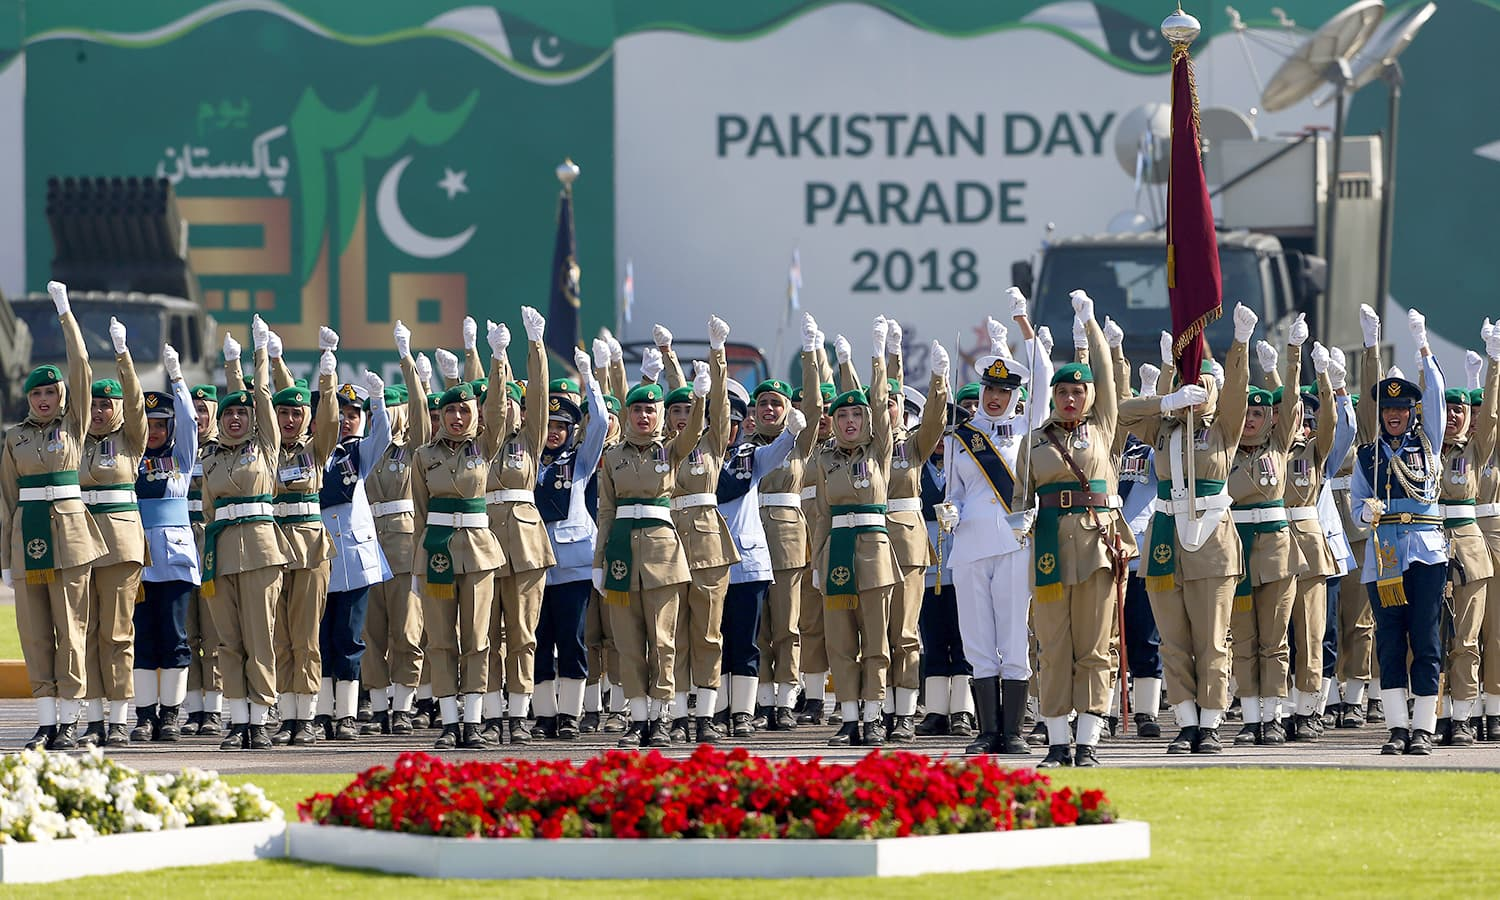 Female soldiers of the Pakistan Army chant 'Long Live Pakistan' during the Pakistan Day military parade in Islamabad. ─AP